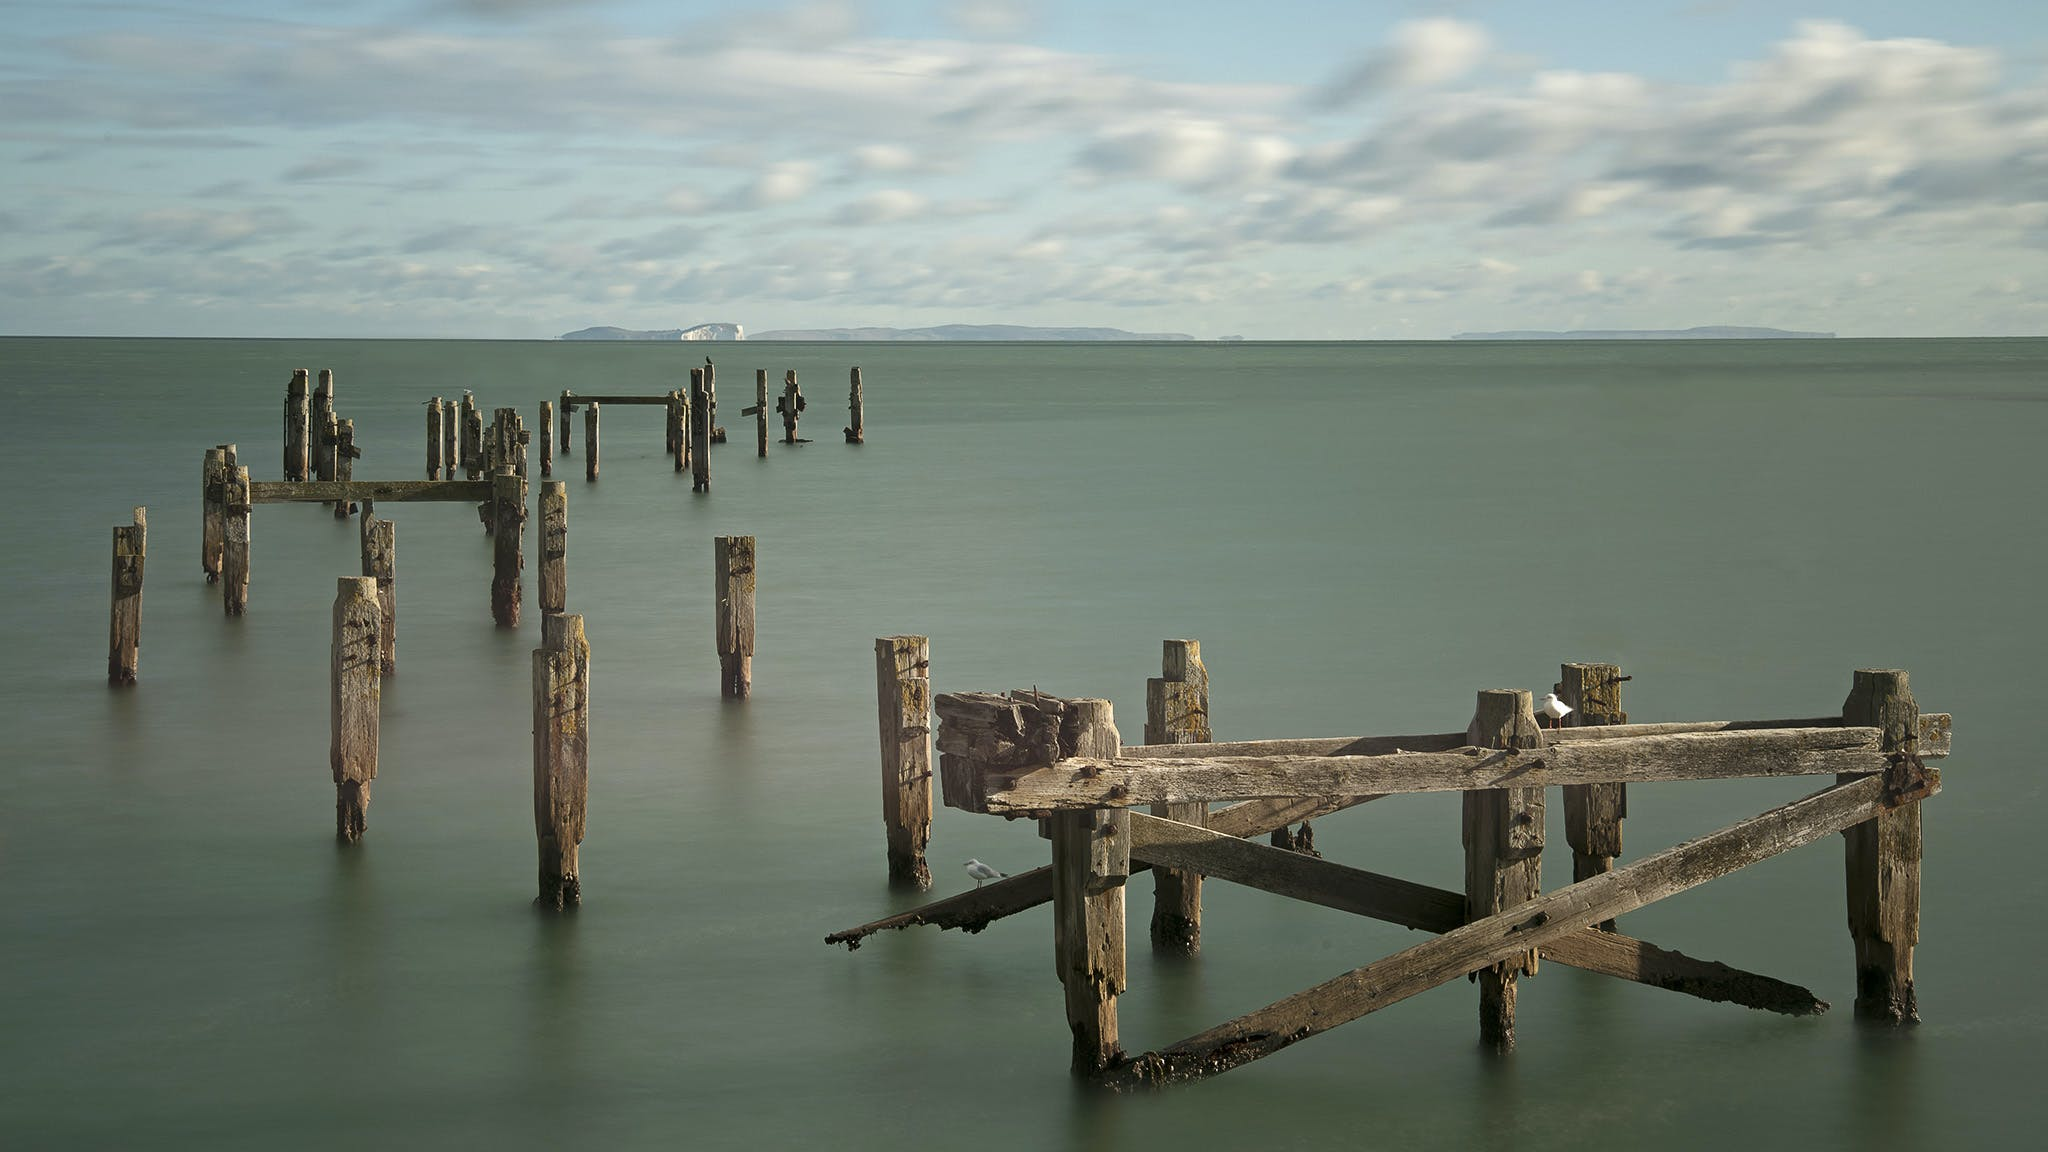 Free stock photo of calm waters, pier, Rotten Wood, seascape